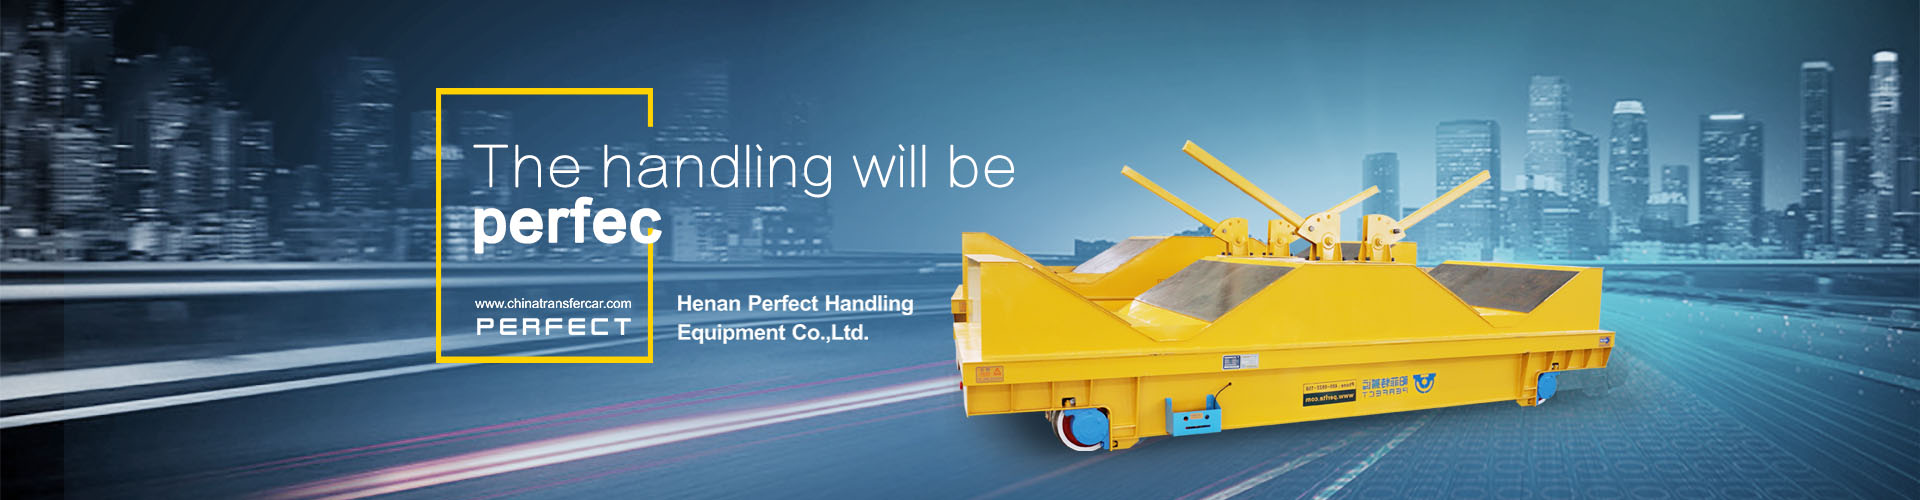 Henan Perfect Handling Equipment Co., Ltd. logo